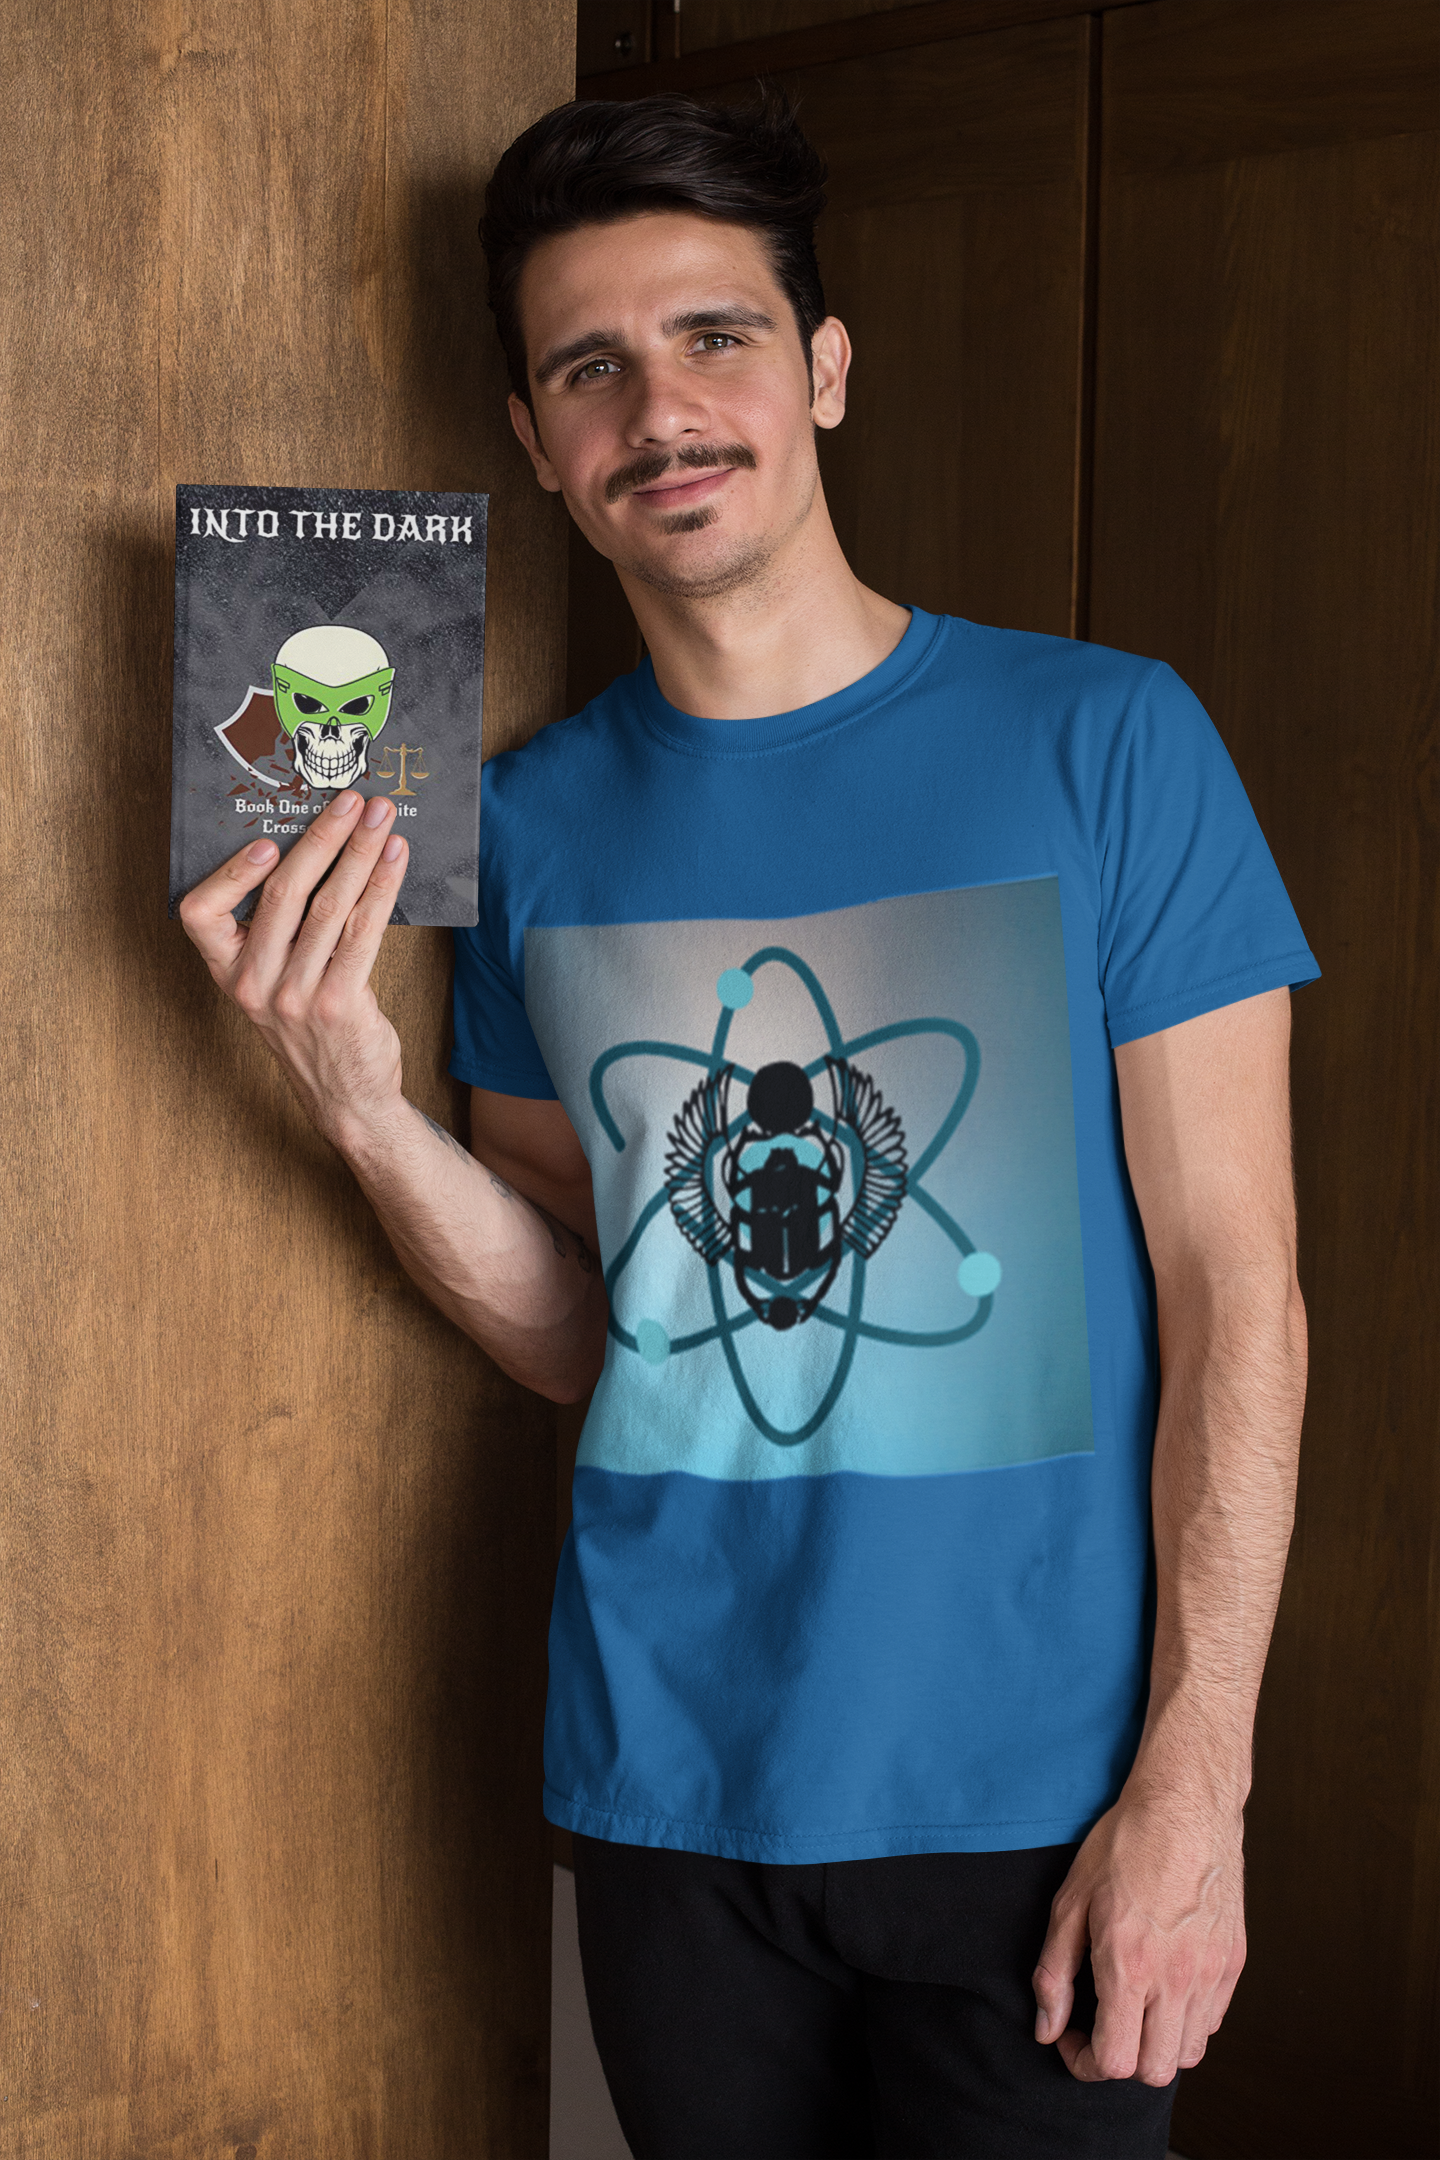 t-shirt-mockup-of-a-man-holding-a-book-while-leaning-on-a-wooden-door-28499